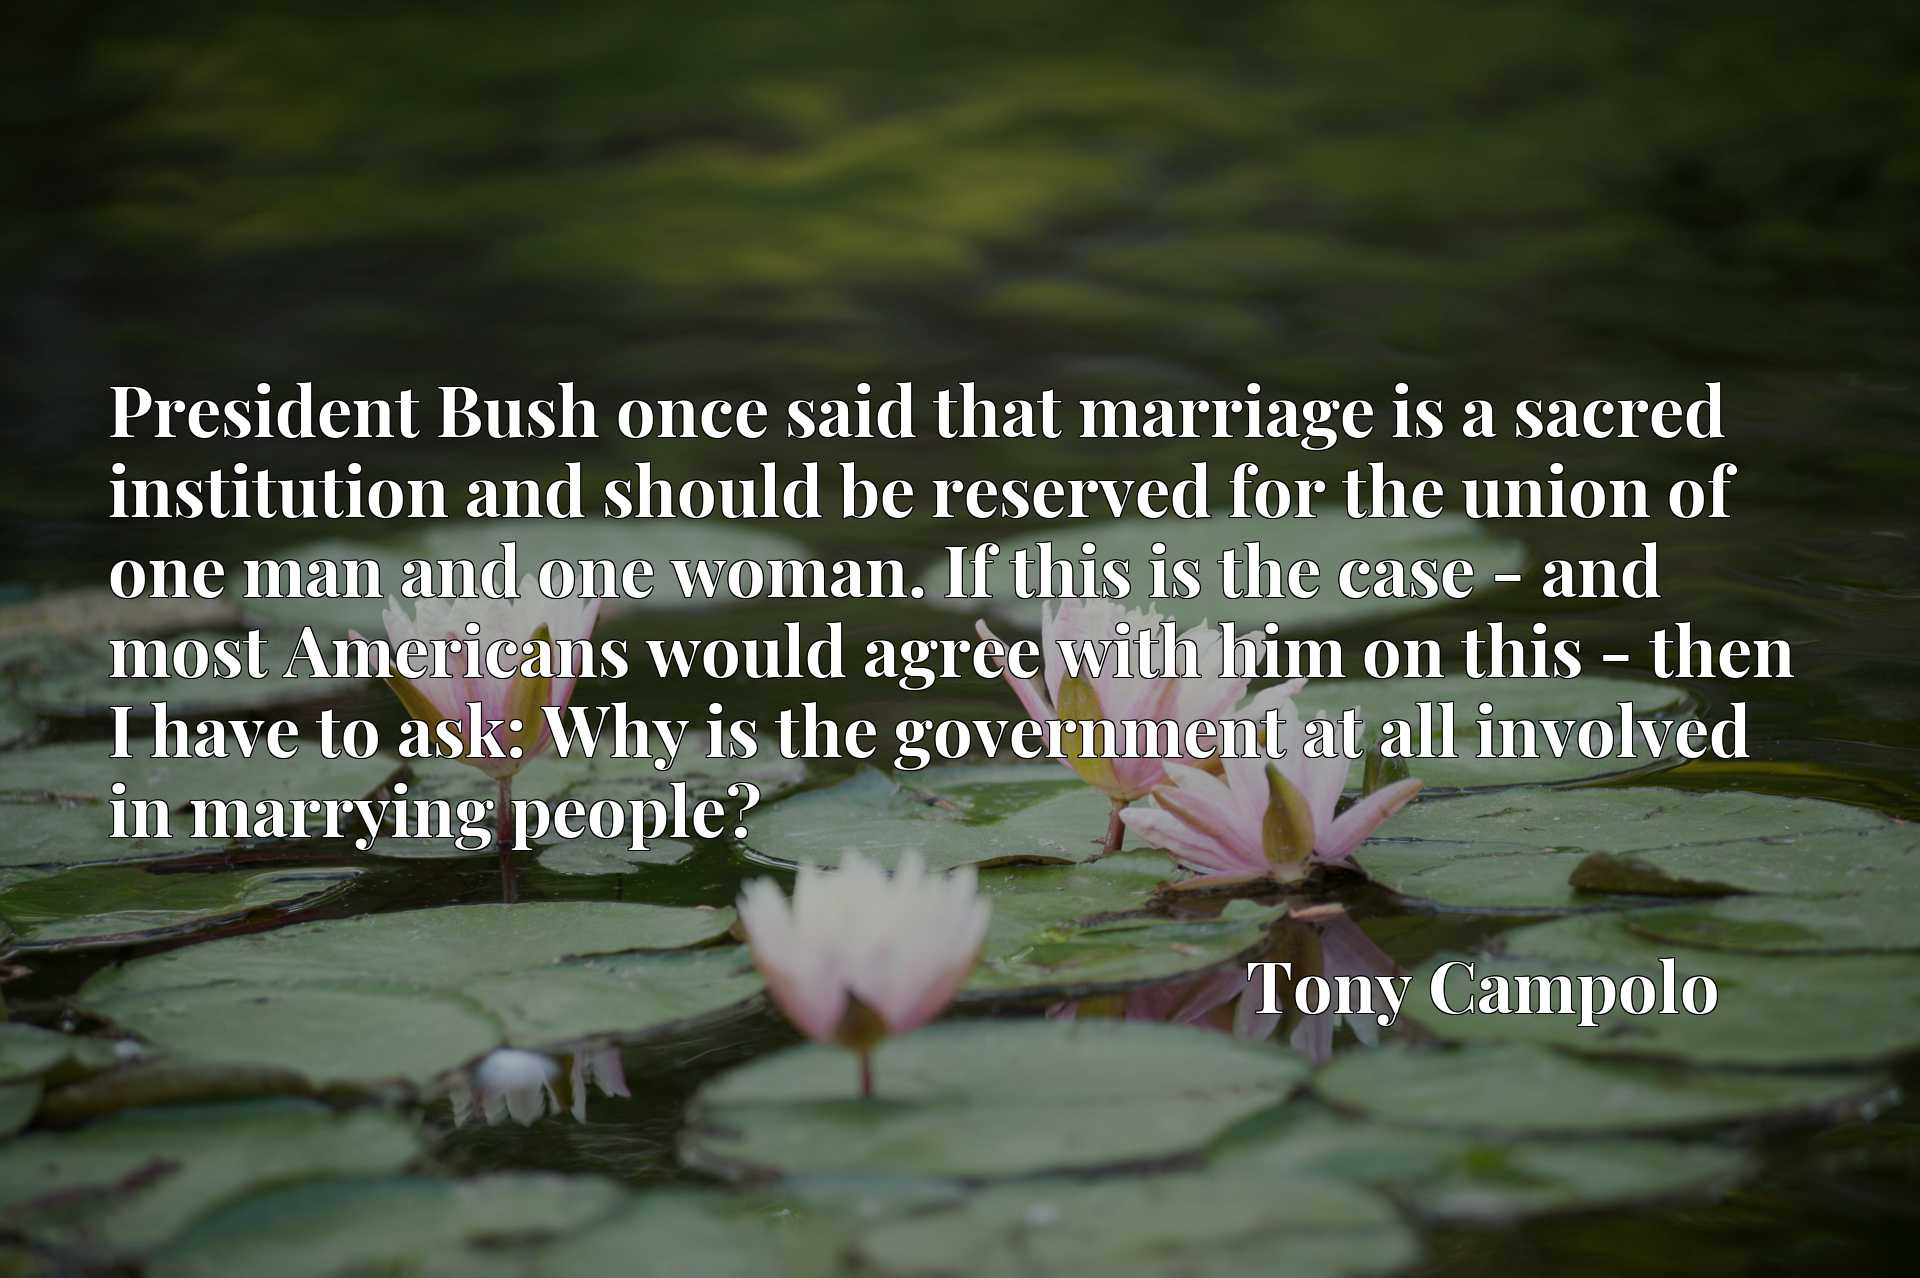 President Bush once said that marriage is a sacred institution and should be reserved for the union of one man and one woman. If this is the case - and most Americans would agree with him on this - then I have to ask: Why is the government at all involved in marrying people?